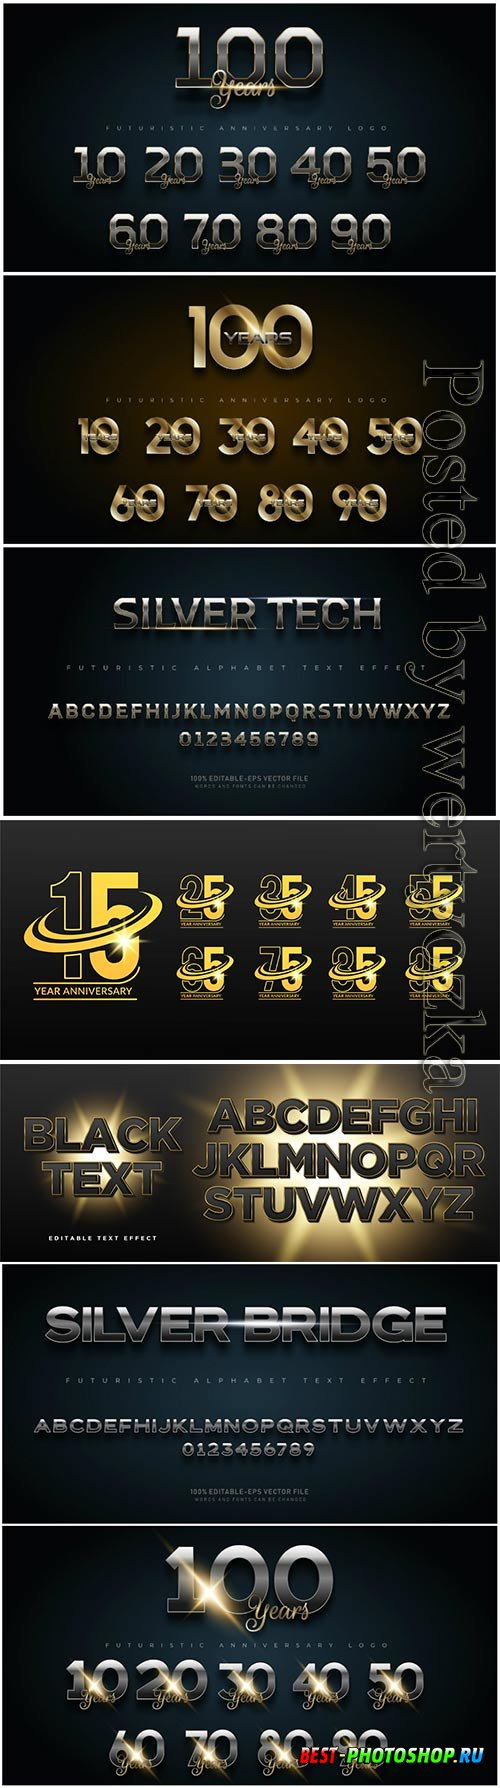 Gold and silver anniversary number set logo, alphabet fonts with text effect